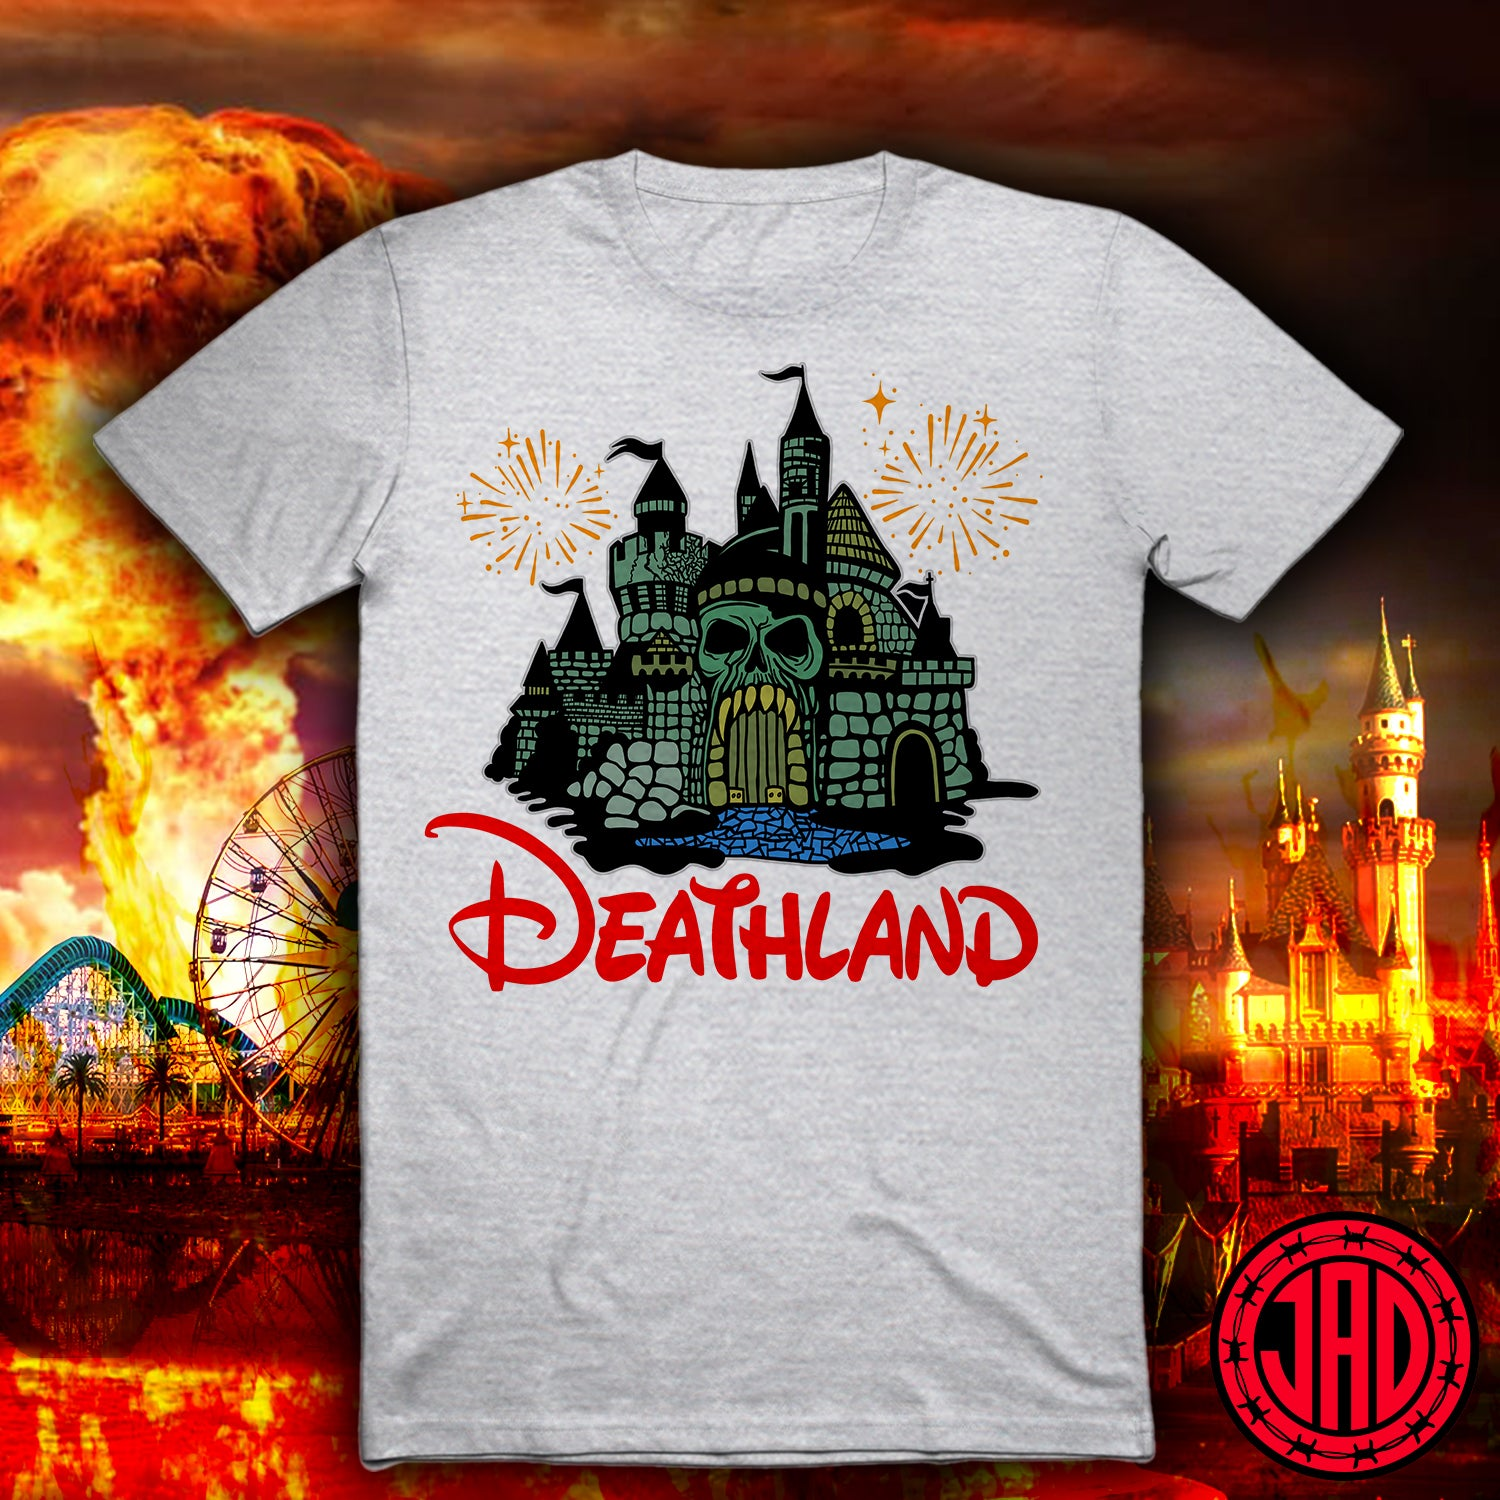 Deathland in Color - Men's (Unisex) Tee